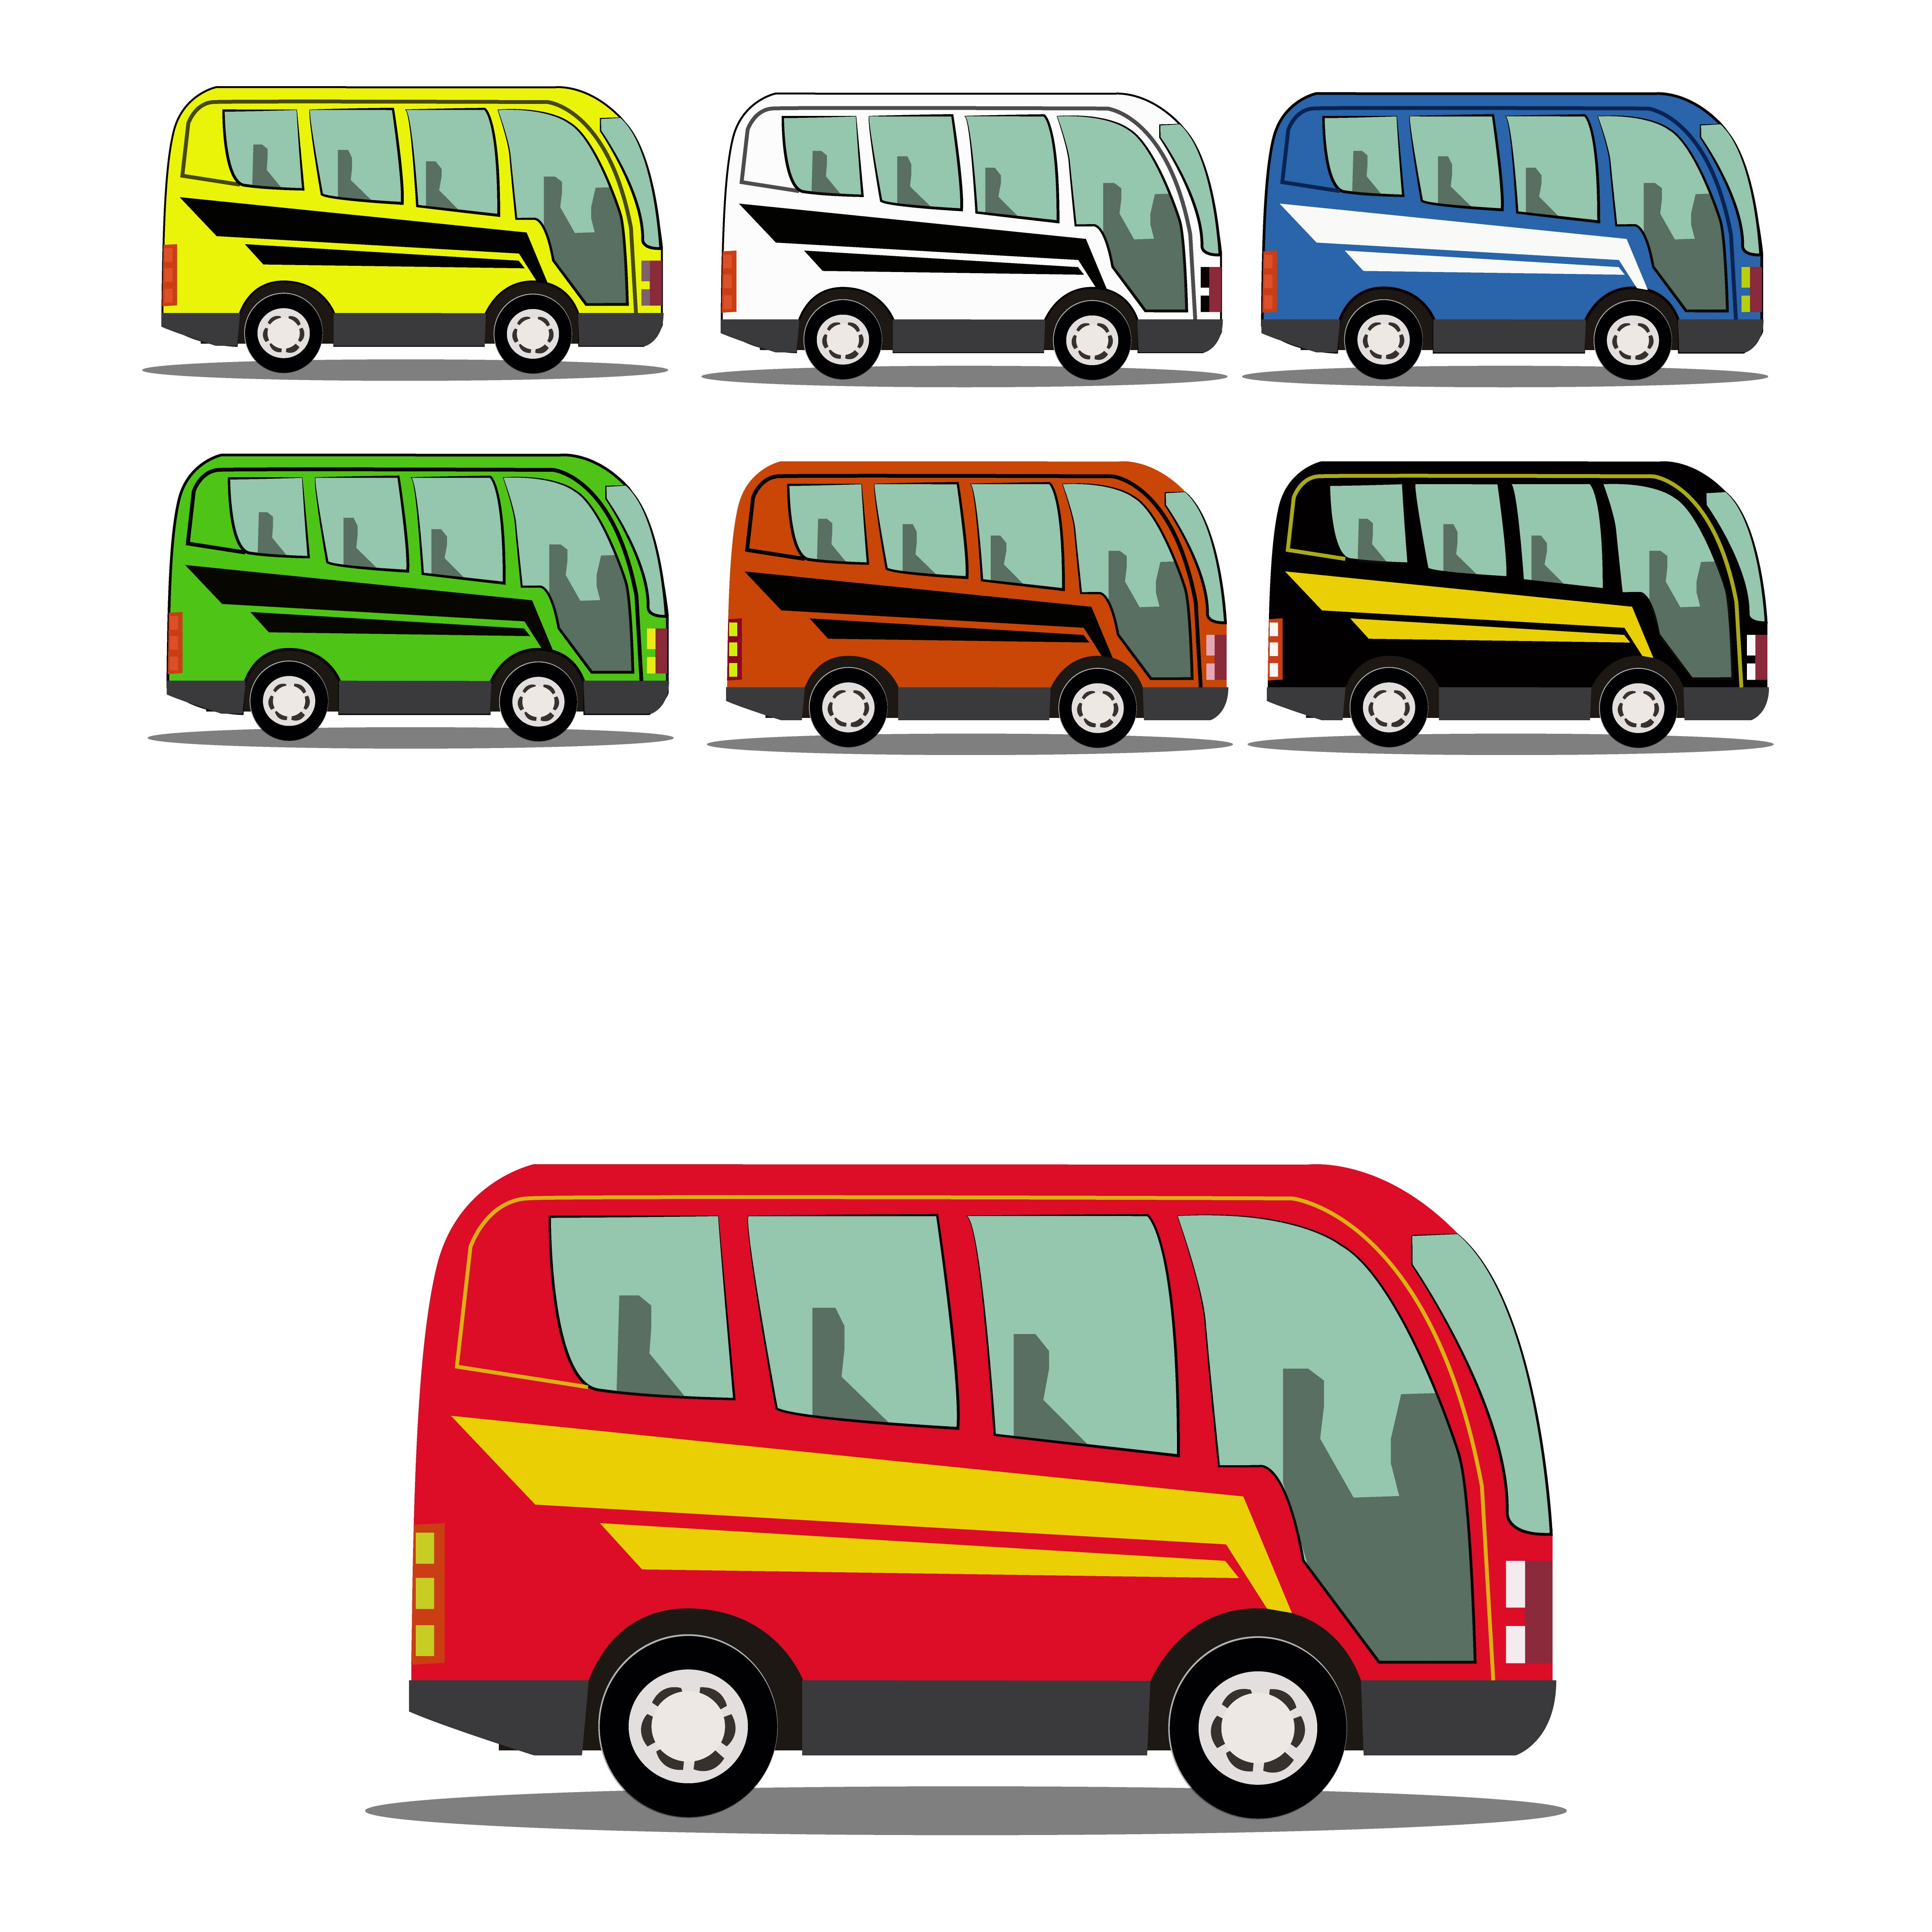 banner black and white stock Truck icon car illustration. Vector bus delivery